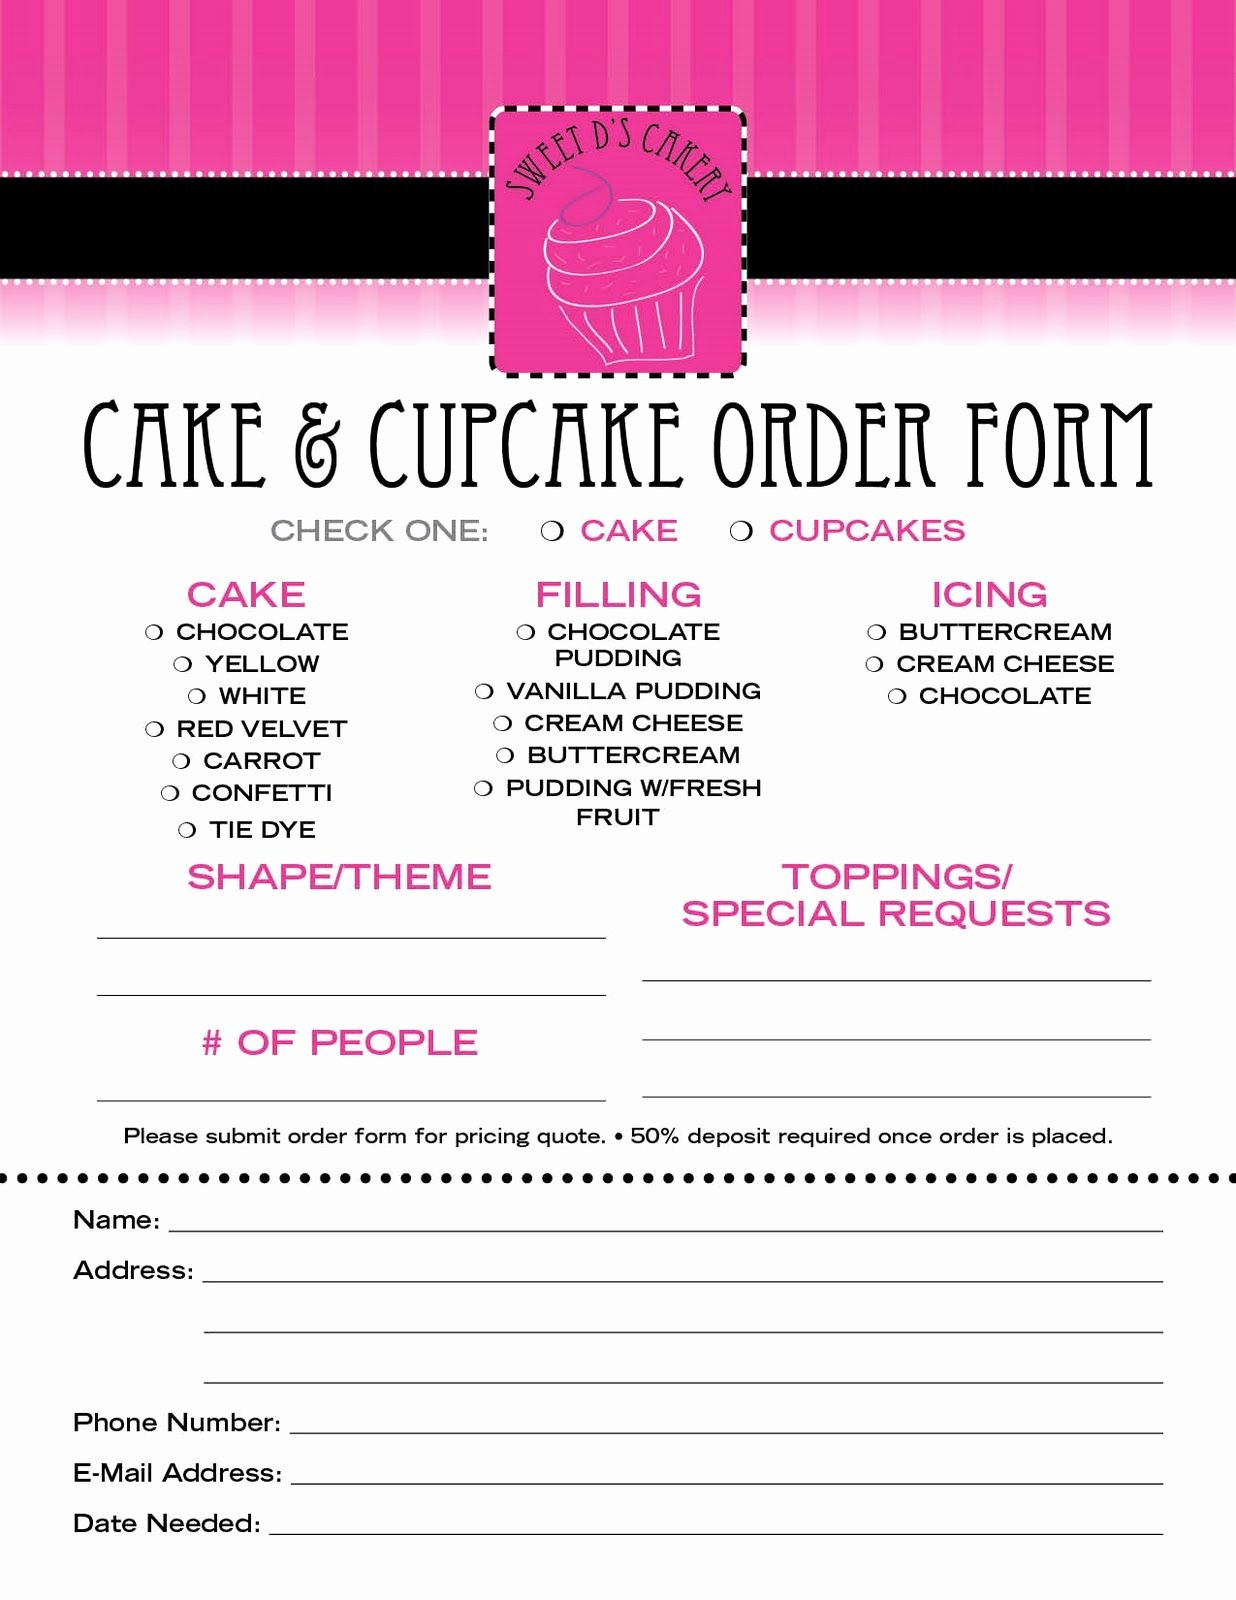 Cake Contract Template Elegant Pin by Tiffany Phillips On Cake order forms In 2018